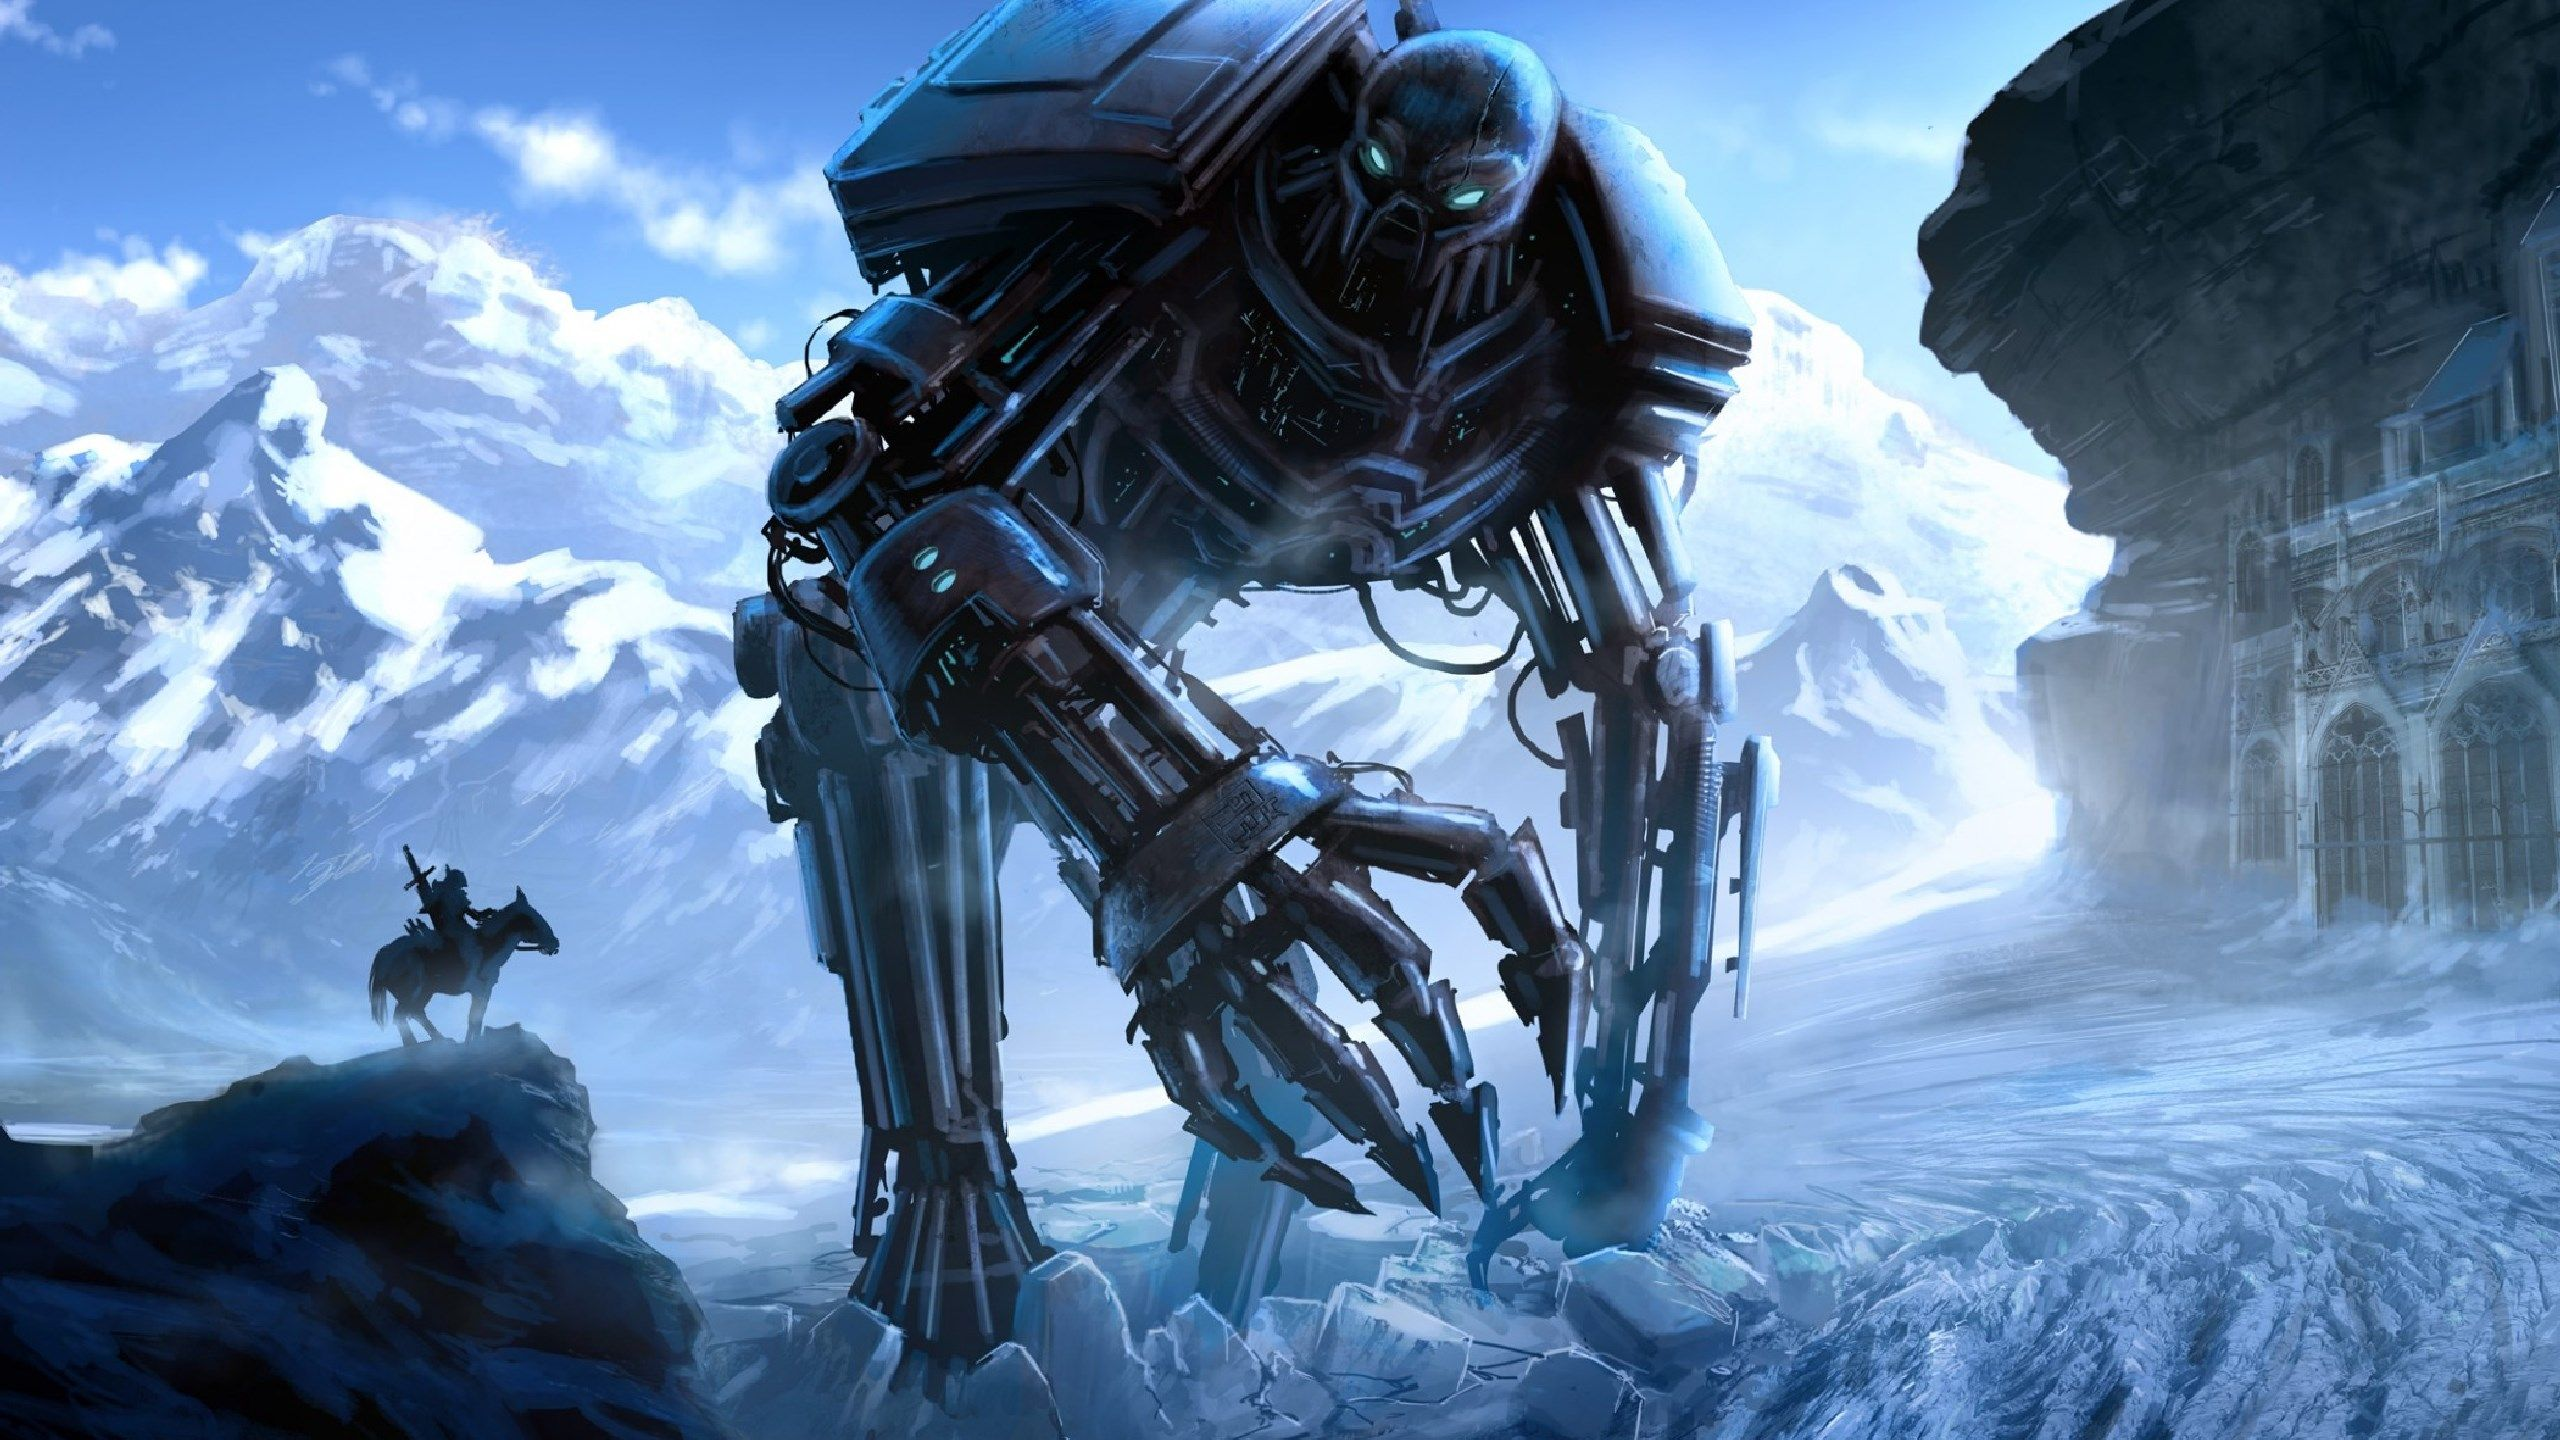 Great Wallpaper High Resolution Sci Fi - 9e0d7af66160ecef882b569dd1e740ea  Perfect Image Reference_319877.jpg